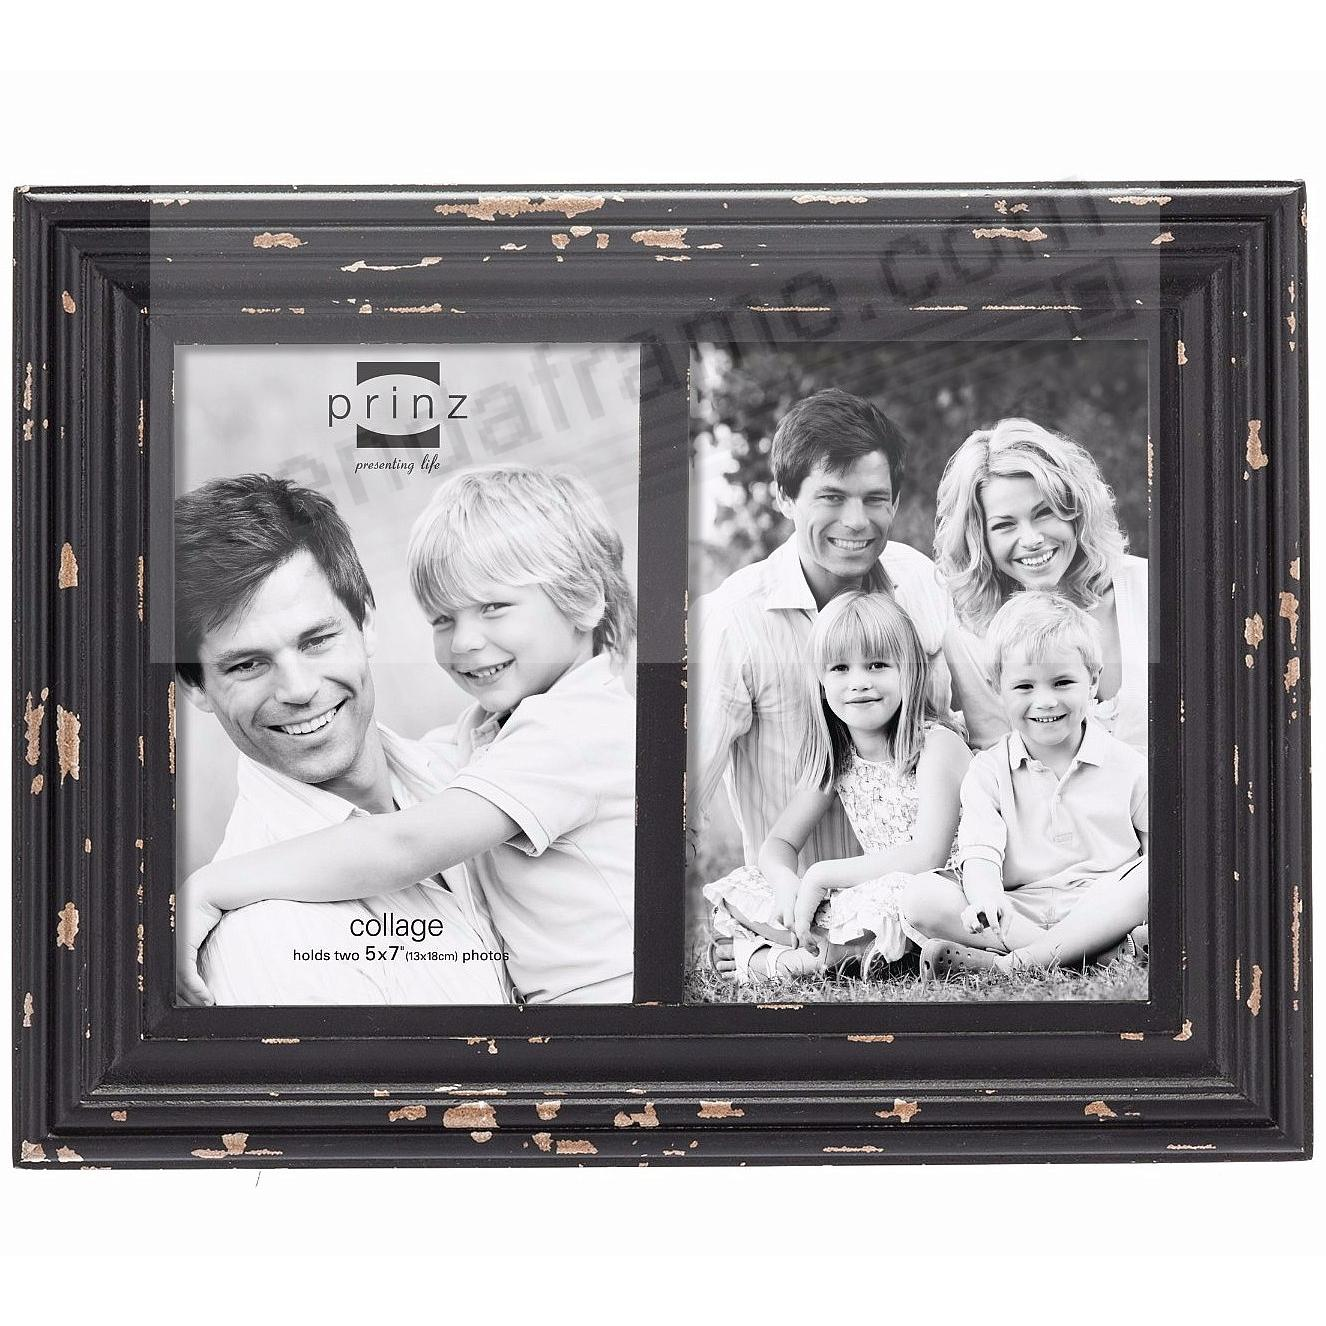 carson distressed black wood float double 5x7 frame by prinz usa